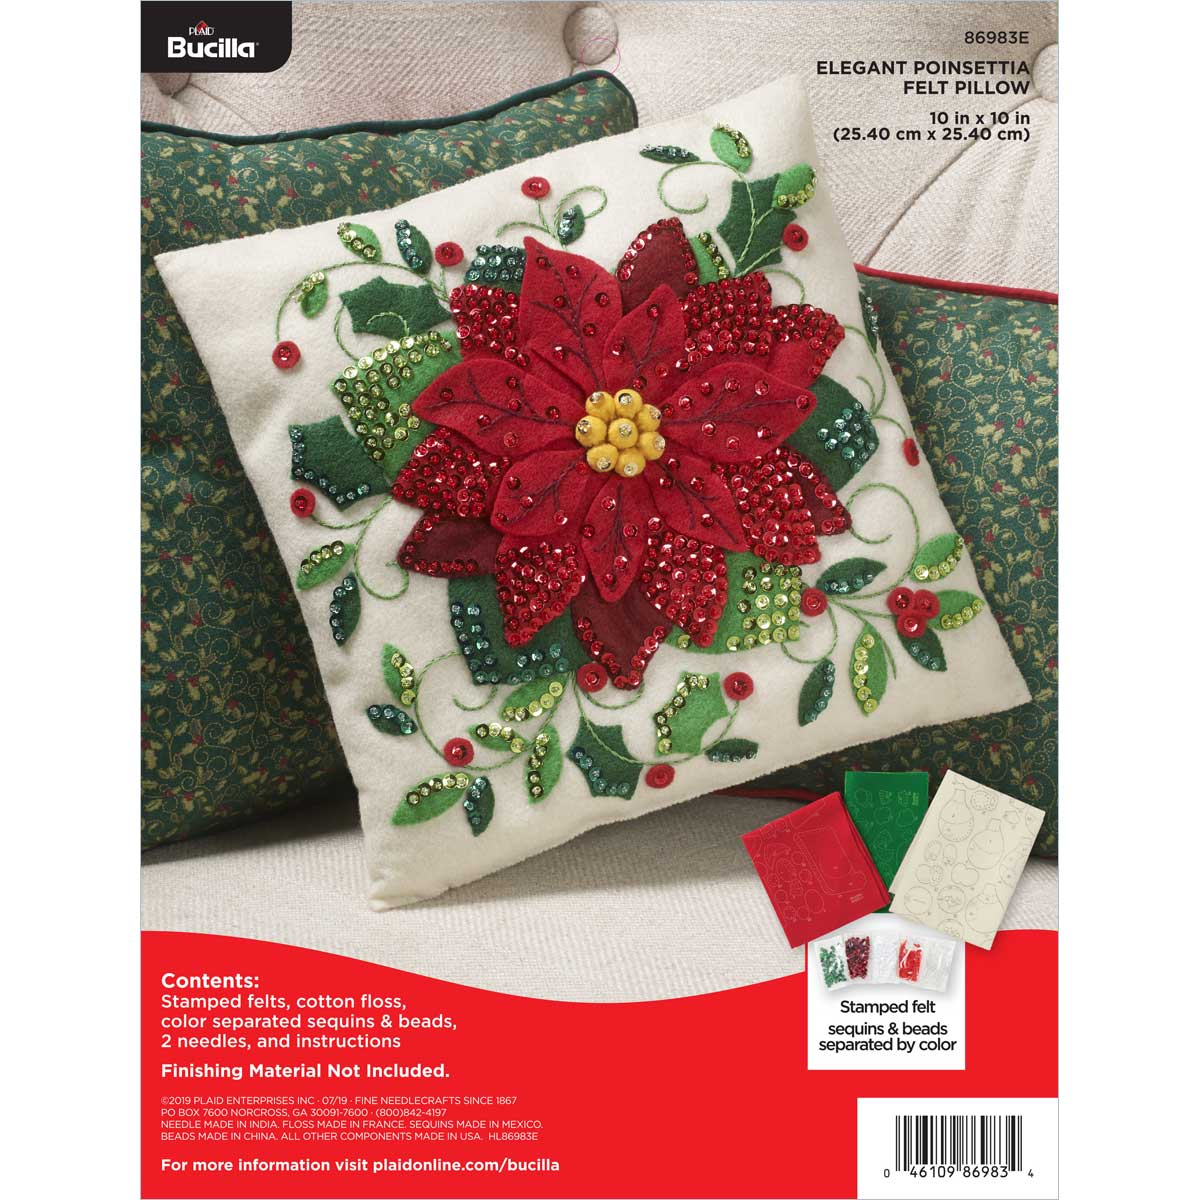 Bucilla ® Seasonal - Felt - Home Decor - Pillow - Elegant Poinsettia